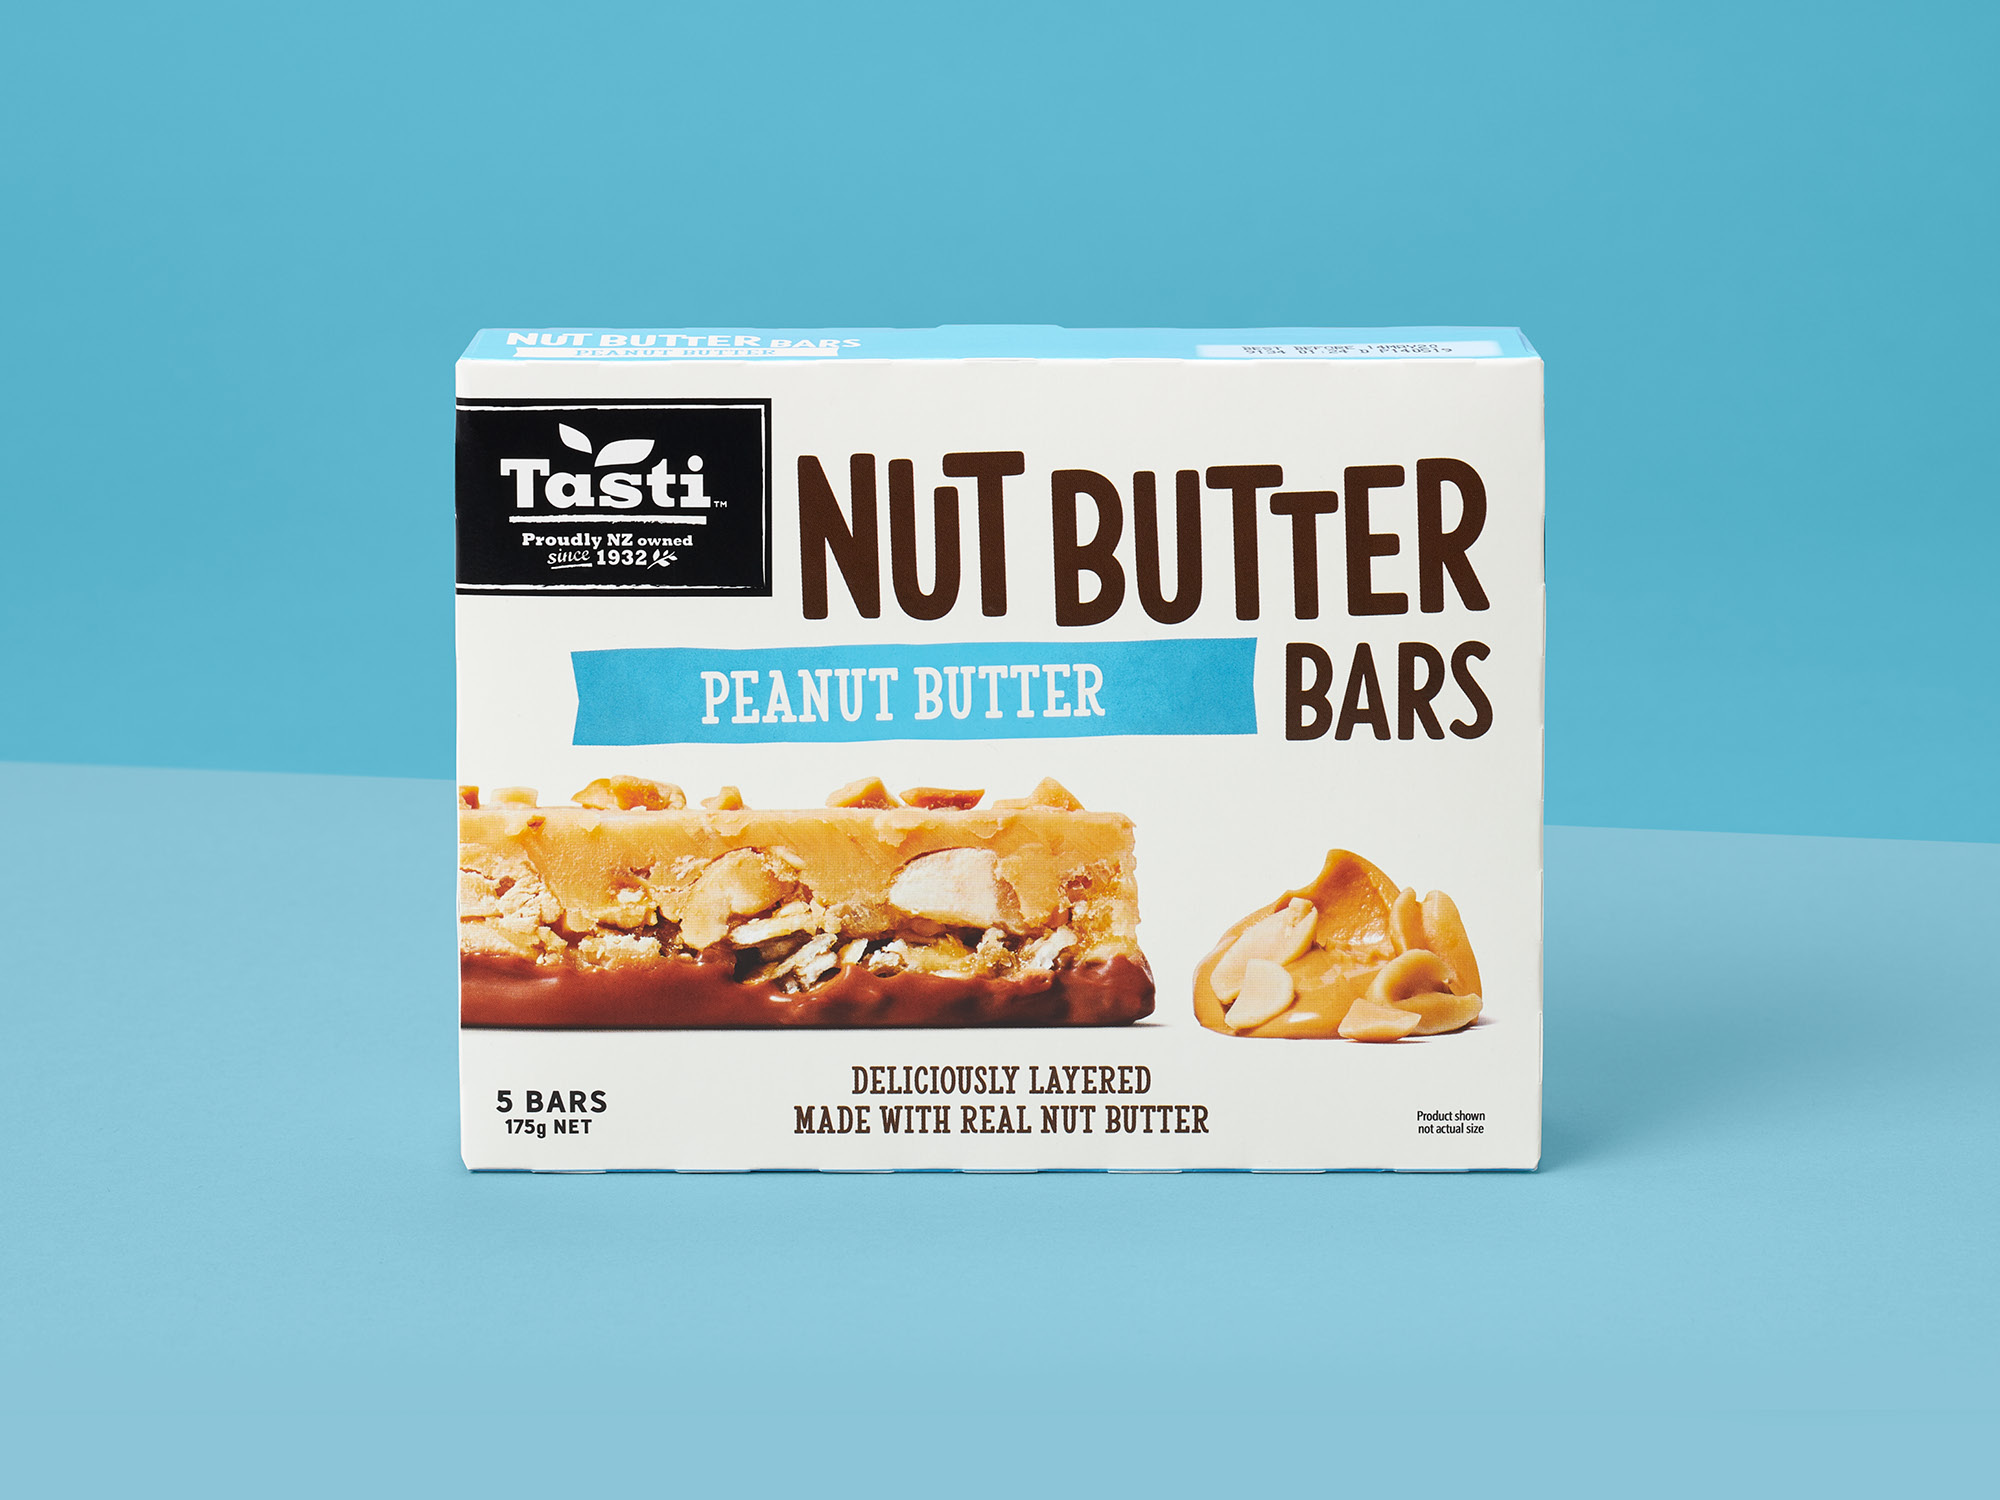 onfire design tast nut butter bar packaging design 4